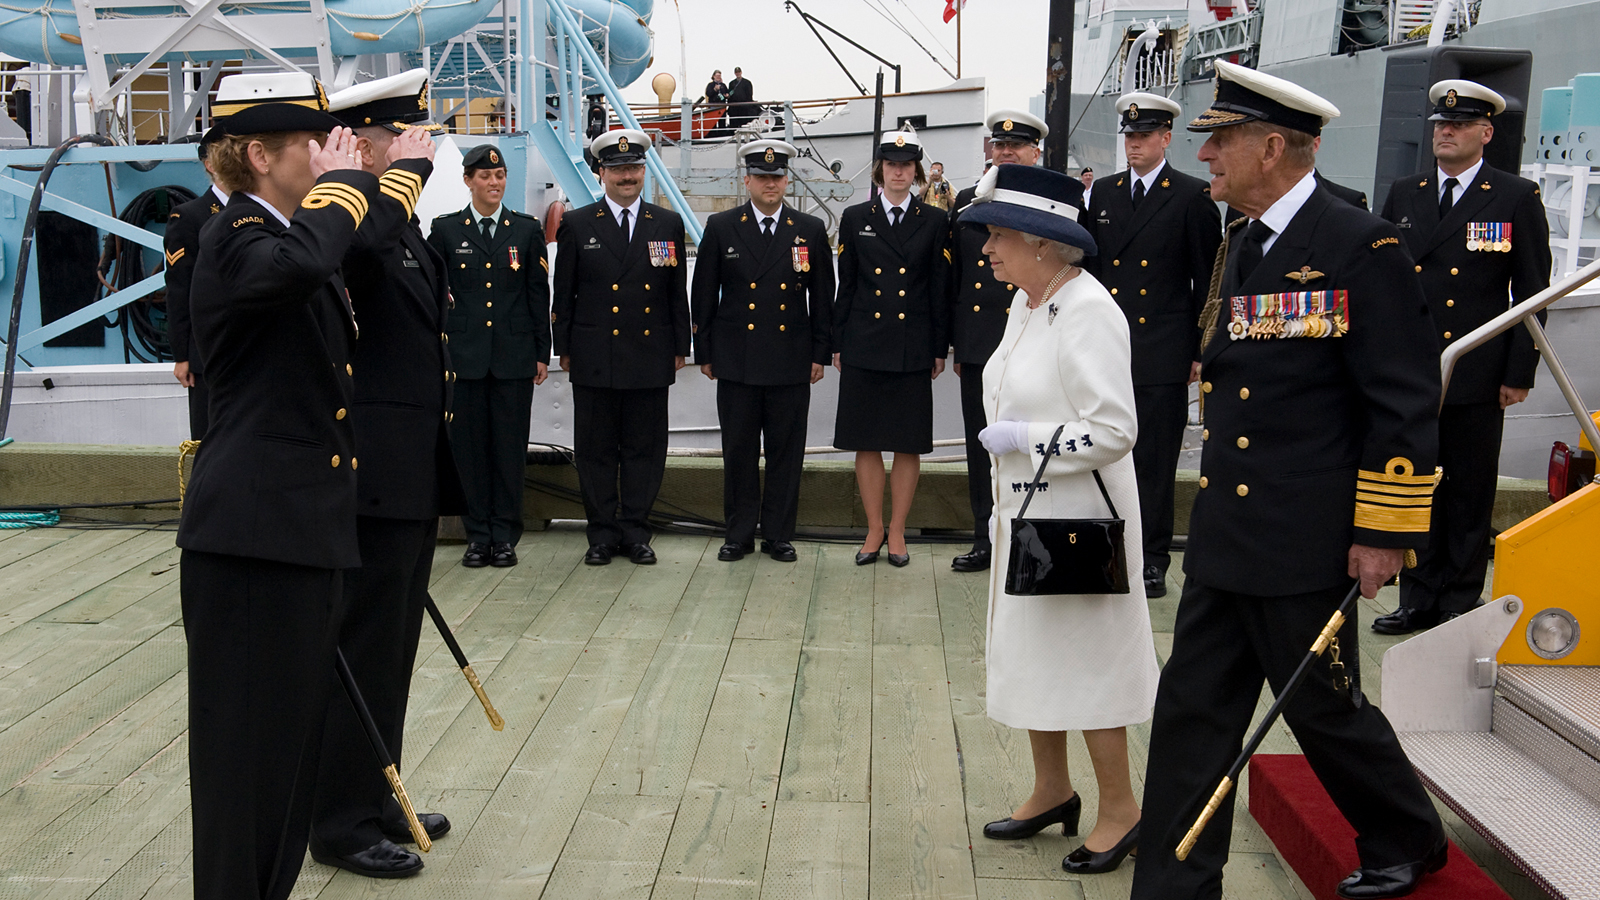 slide - The Queen and Prince Philip during the RCN's centennial celebrations in 2010.